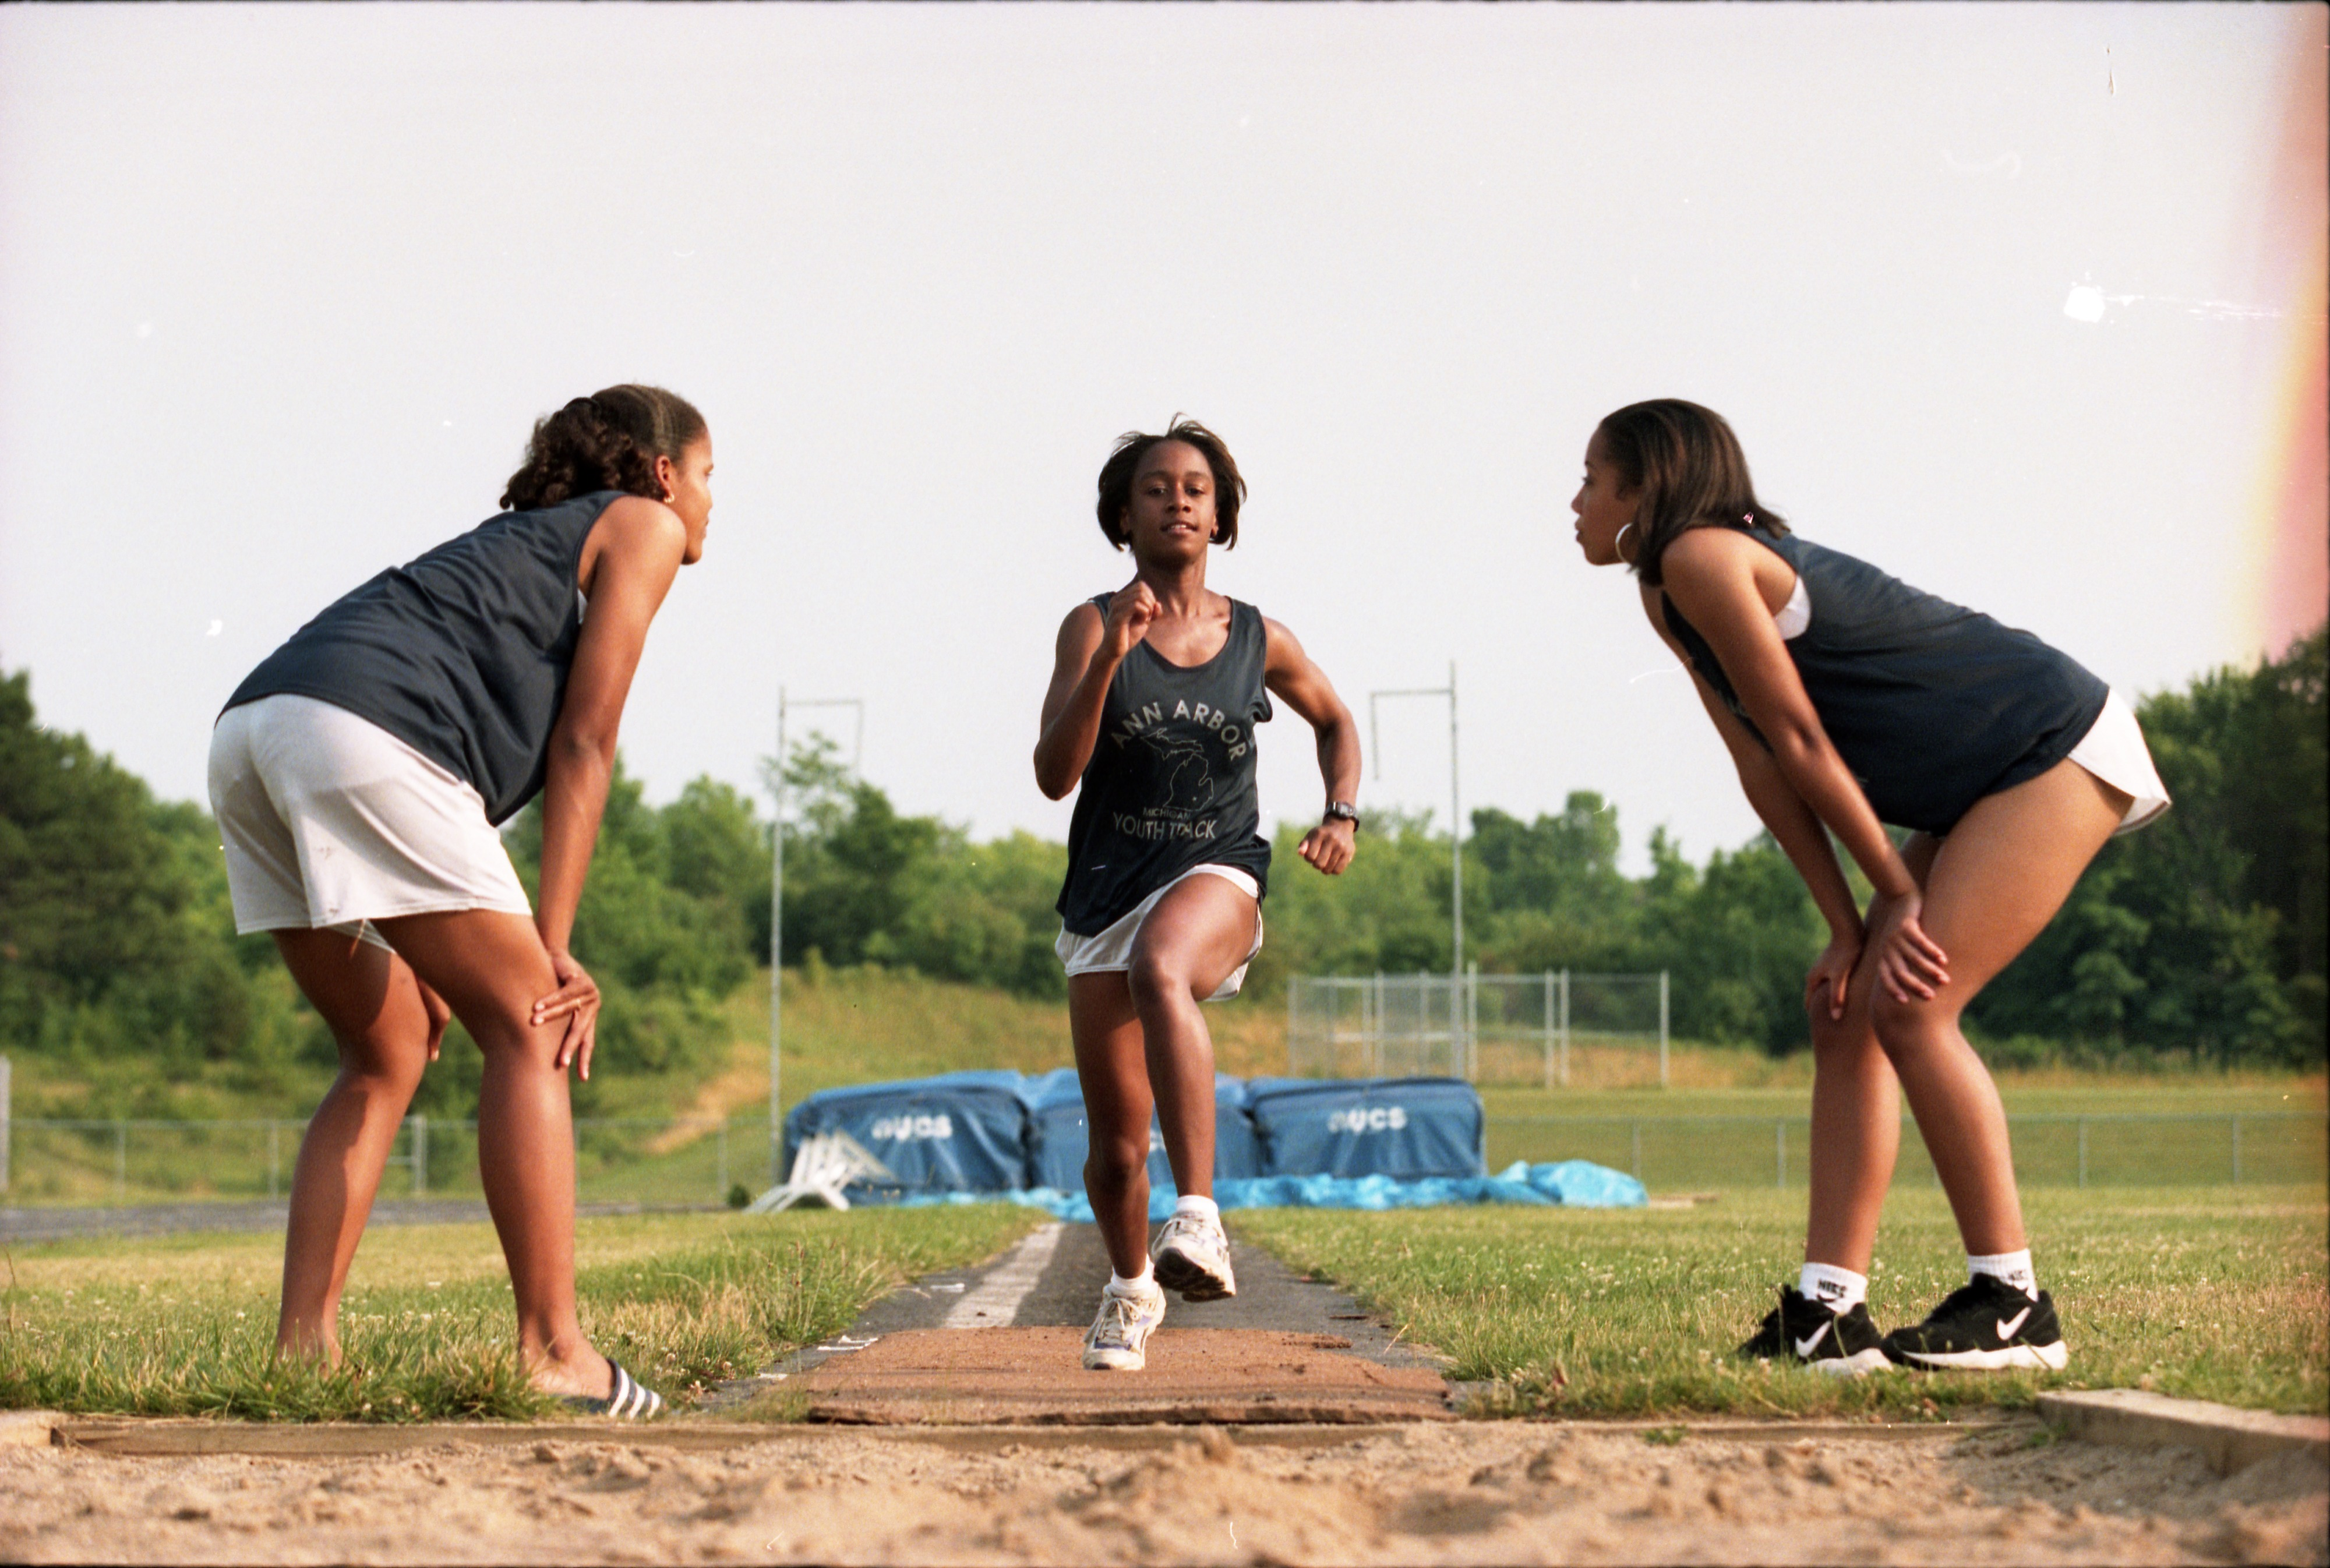 Joneigh Slaughter Of The Ann Arbor Youth Track Club Practices Her Long Jump, August 8, 1995 image